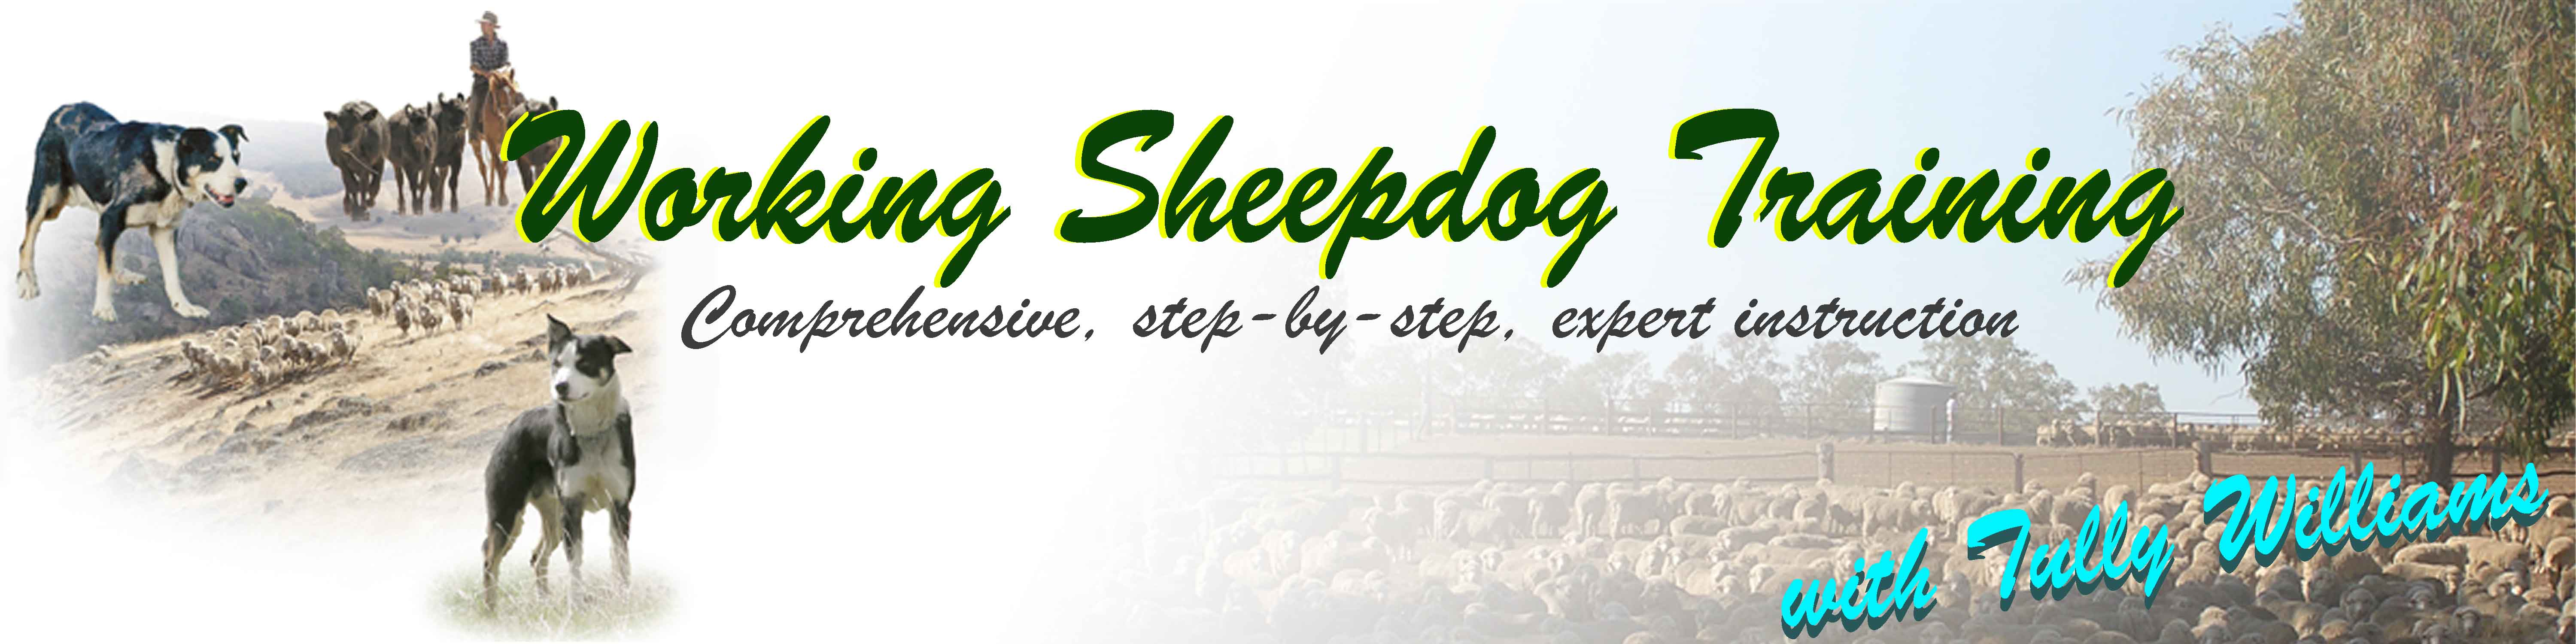 Working Sheepdog Training Videos header image